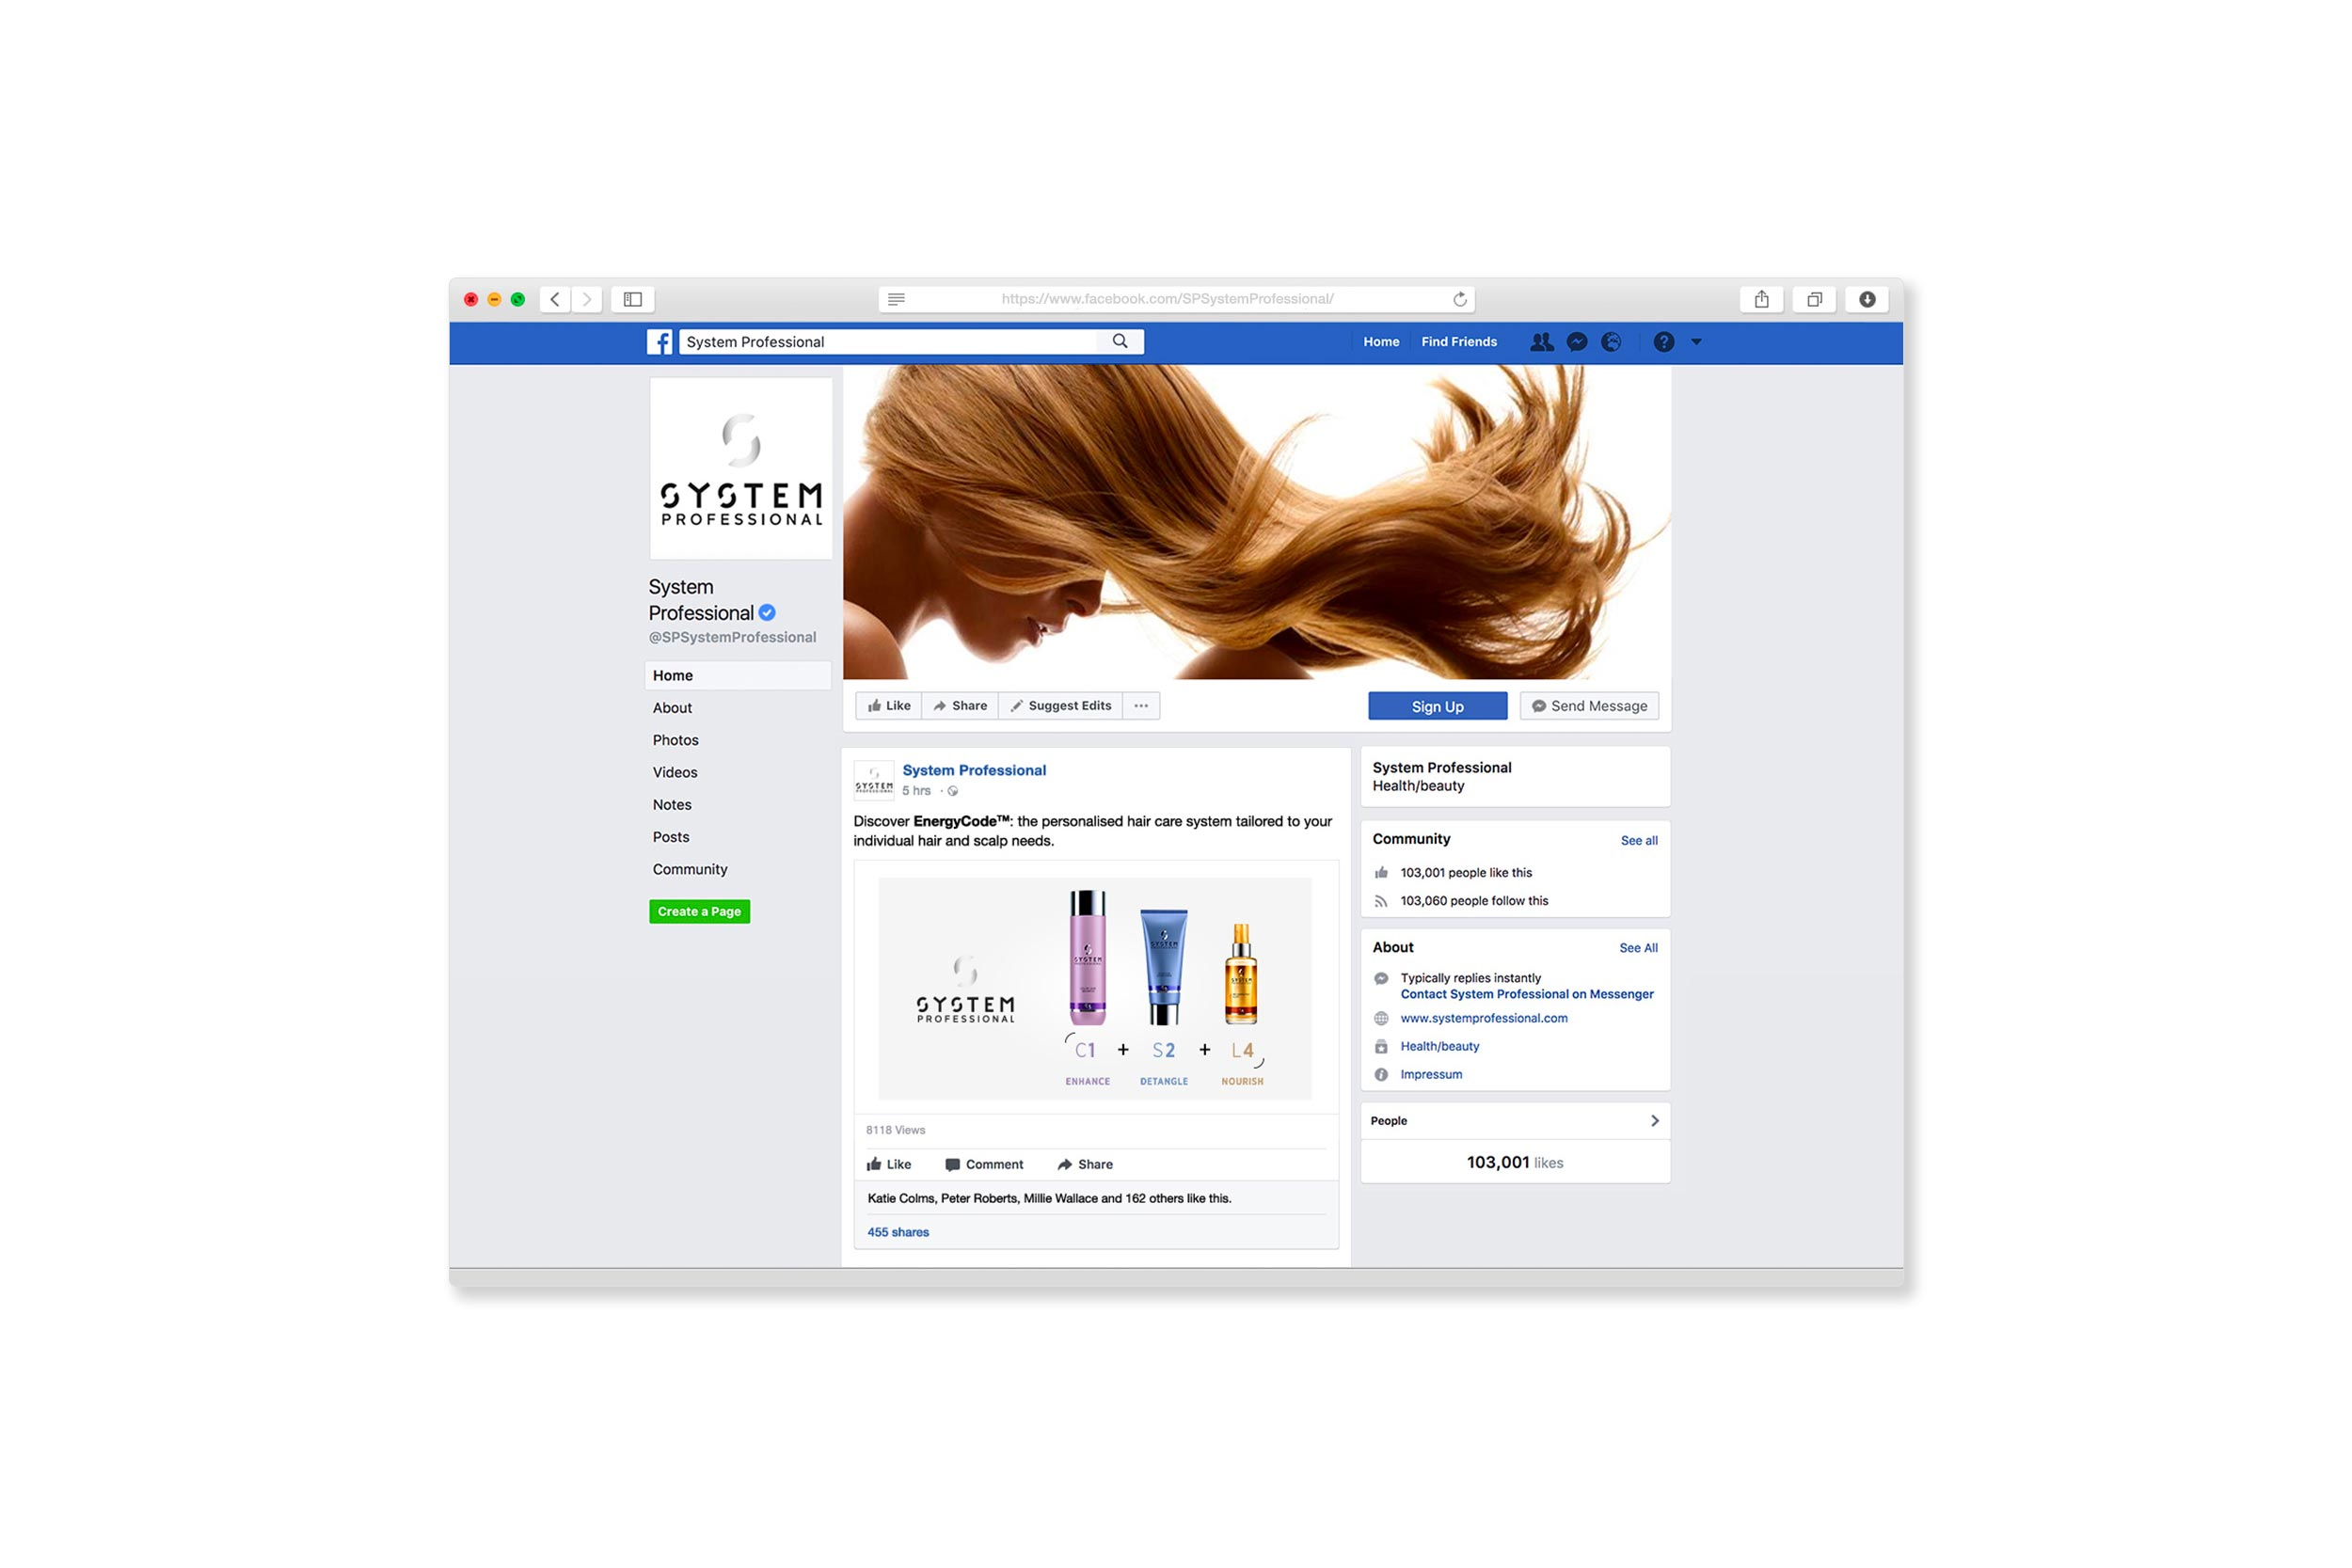 system professional #resolution campaign launch on facebook